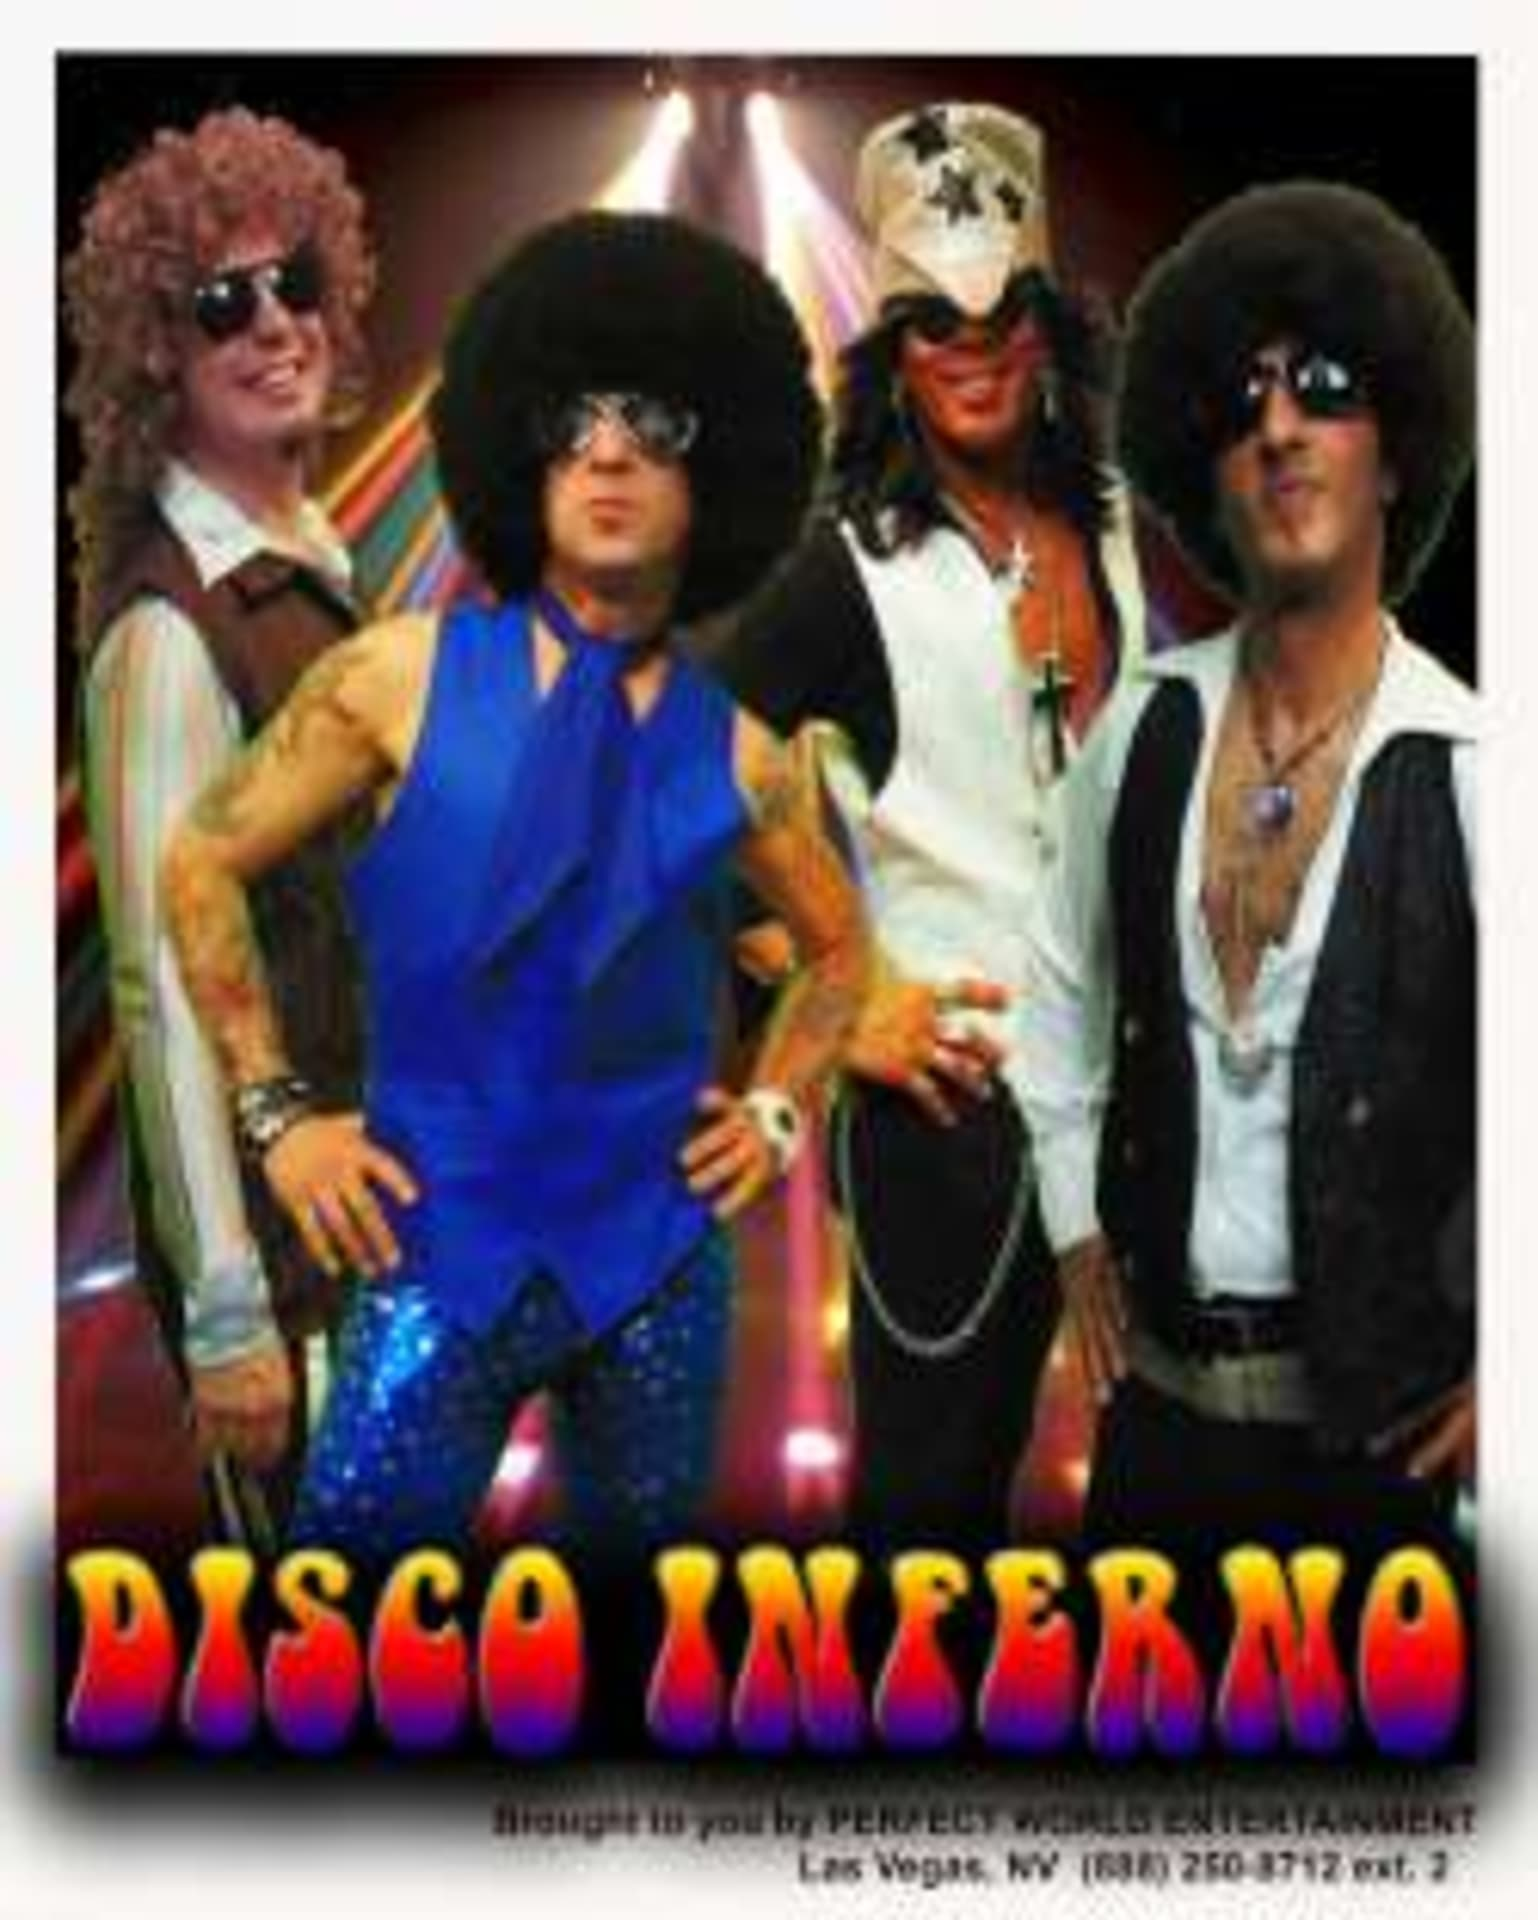 Disco Inferno Saturday March 9th